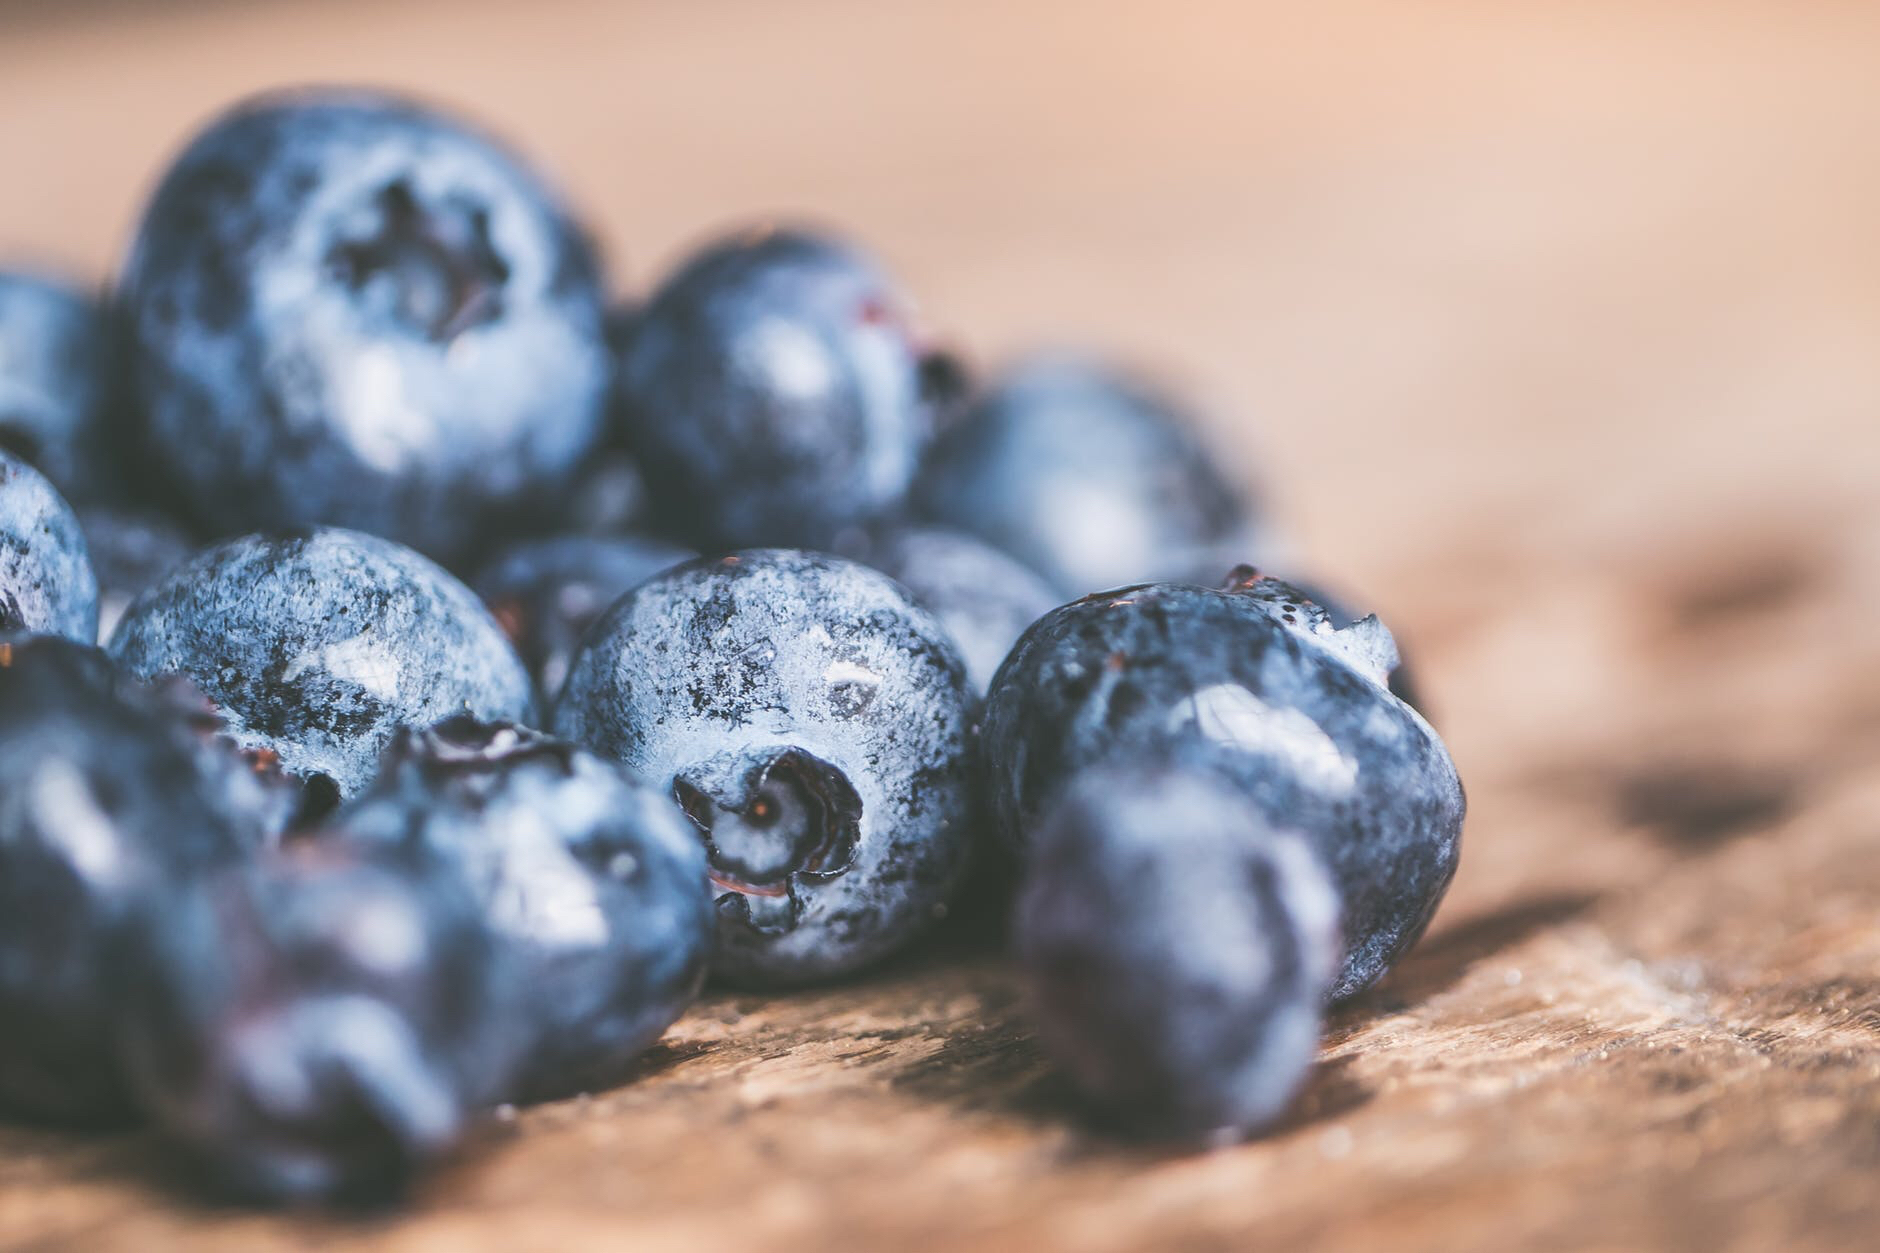 Close up of blueberries on a wooden table